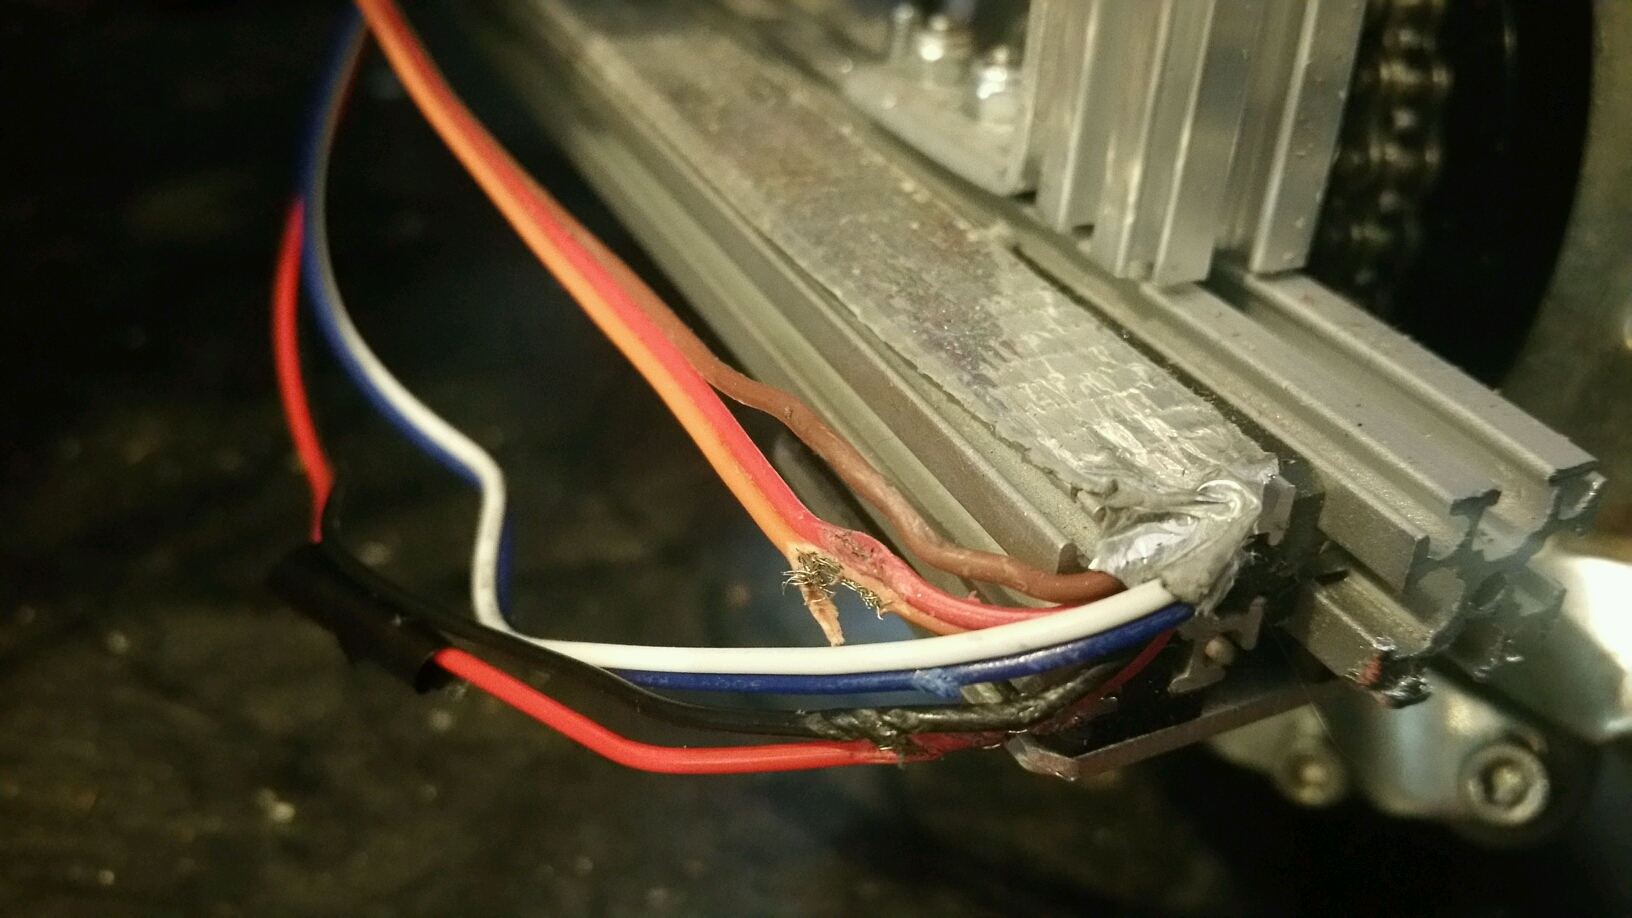 Strippedwires on 3d Printer End Stop Wiring